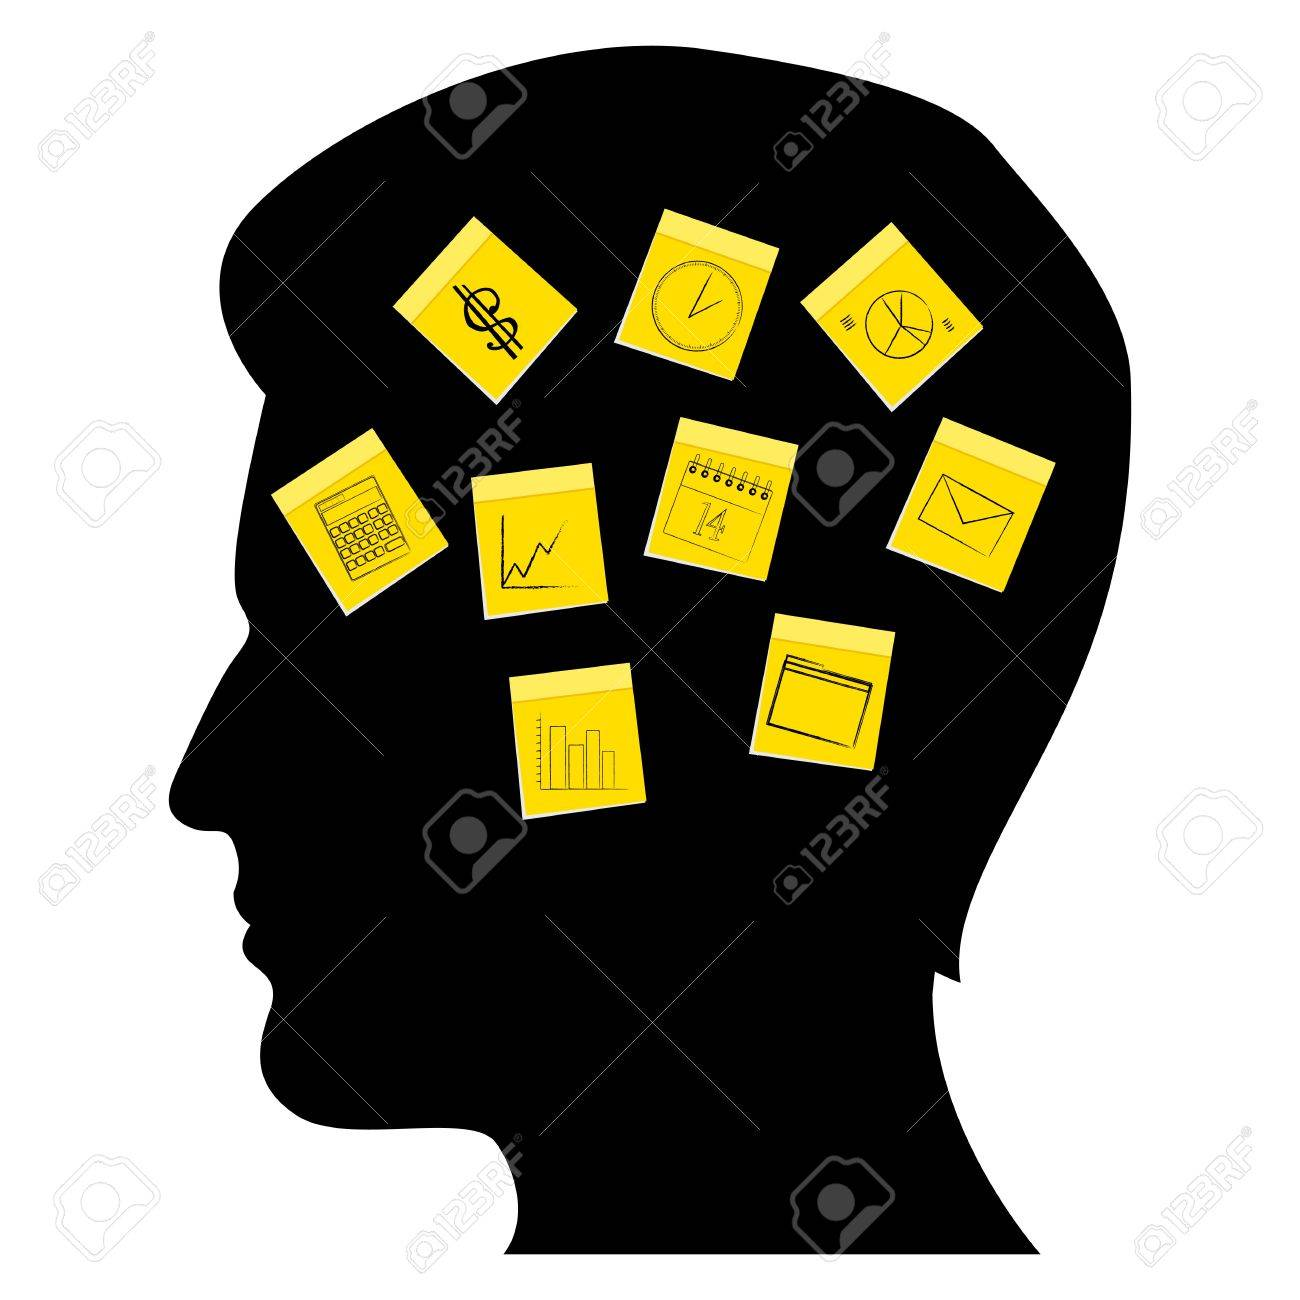 illustration of business man's mind on white background Stock Vector - 8248133